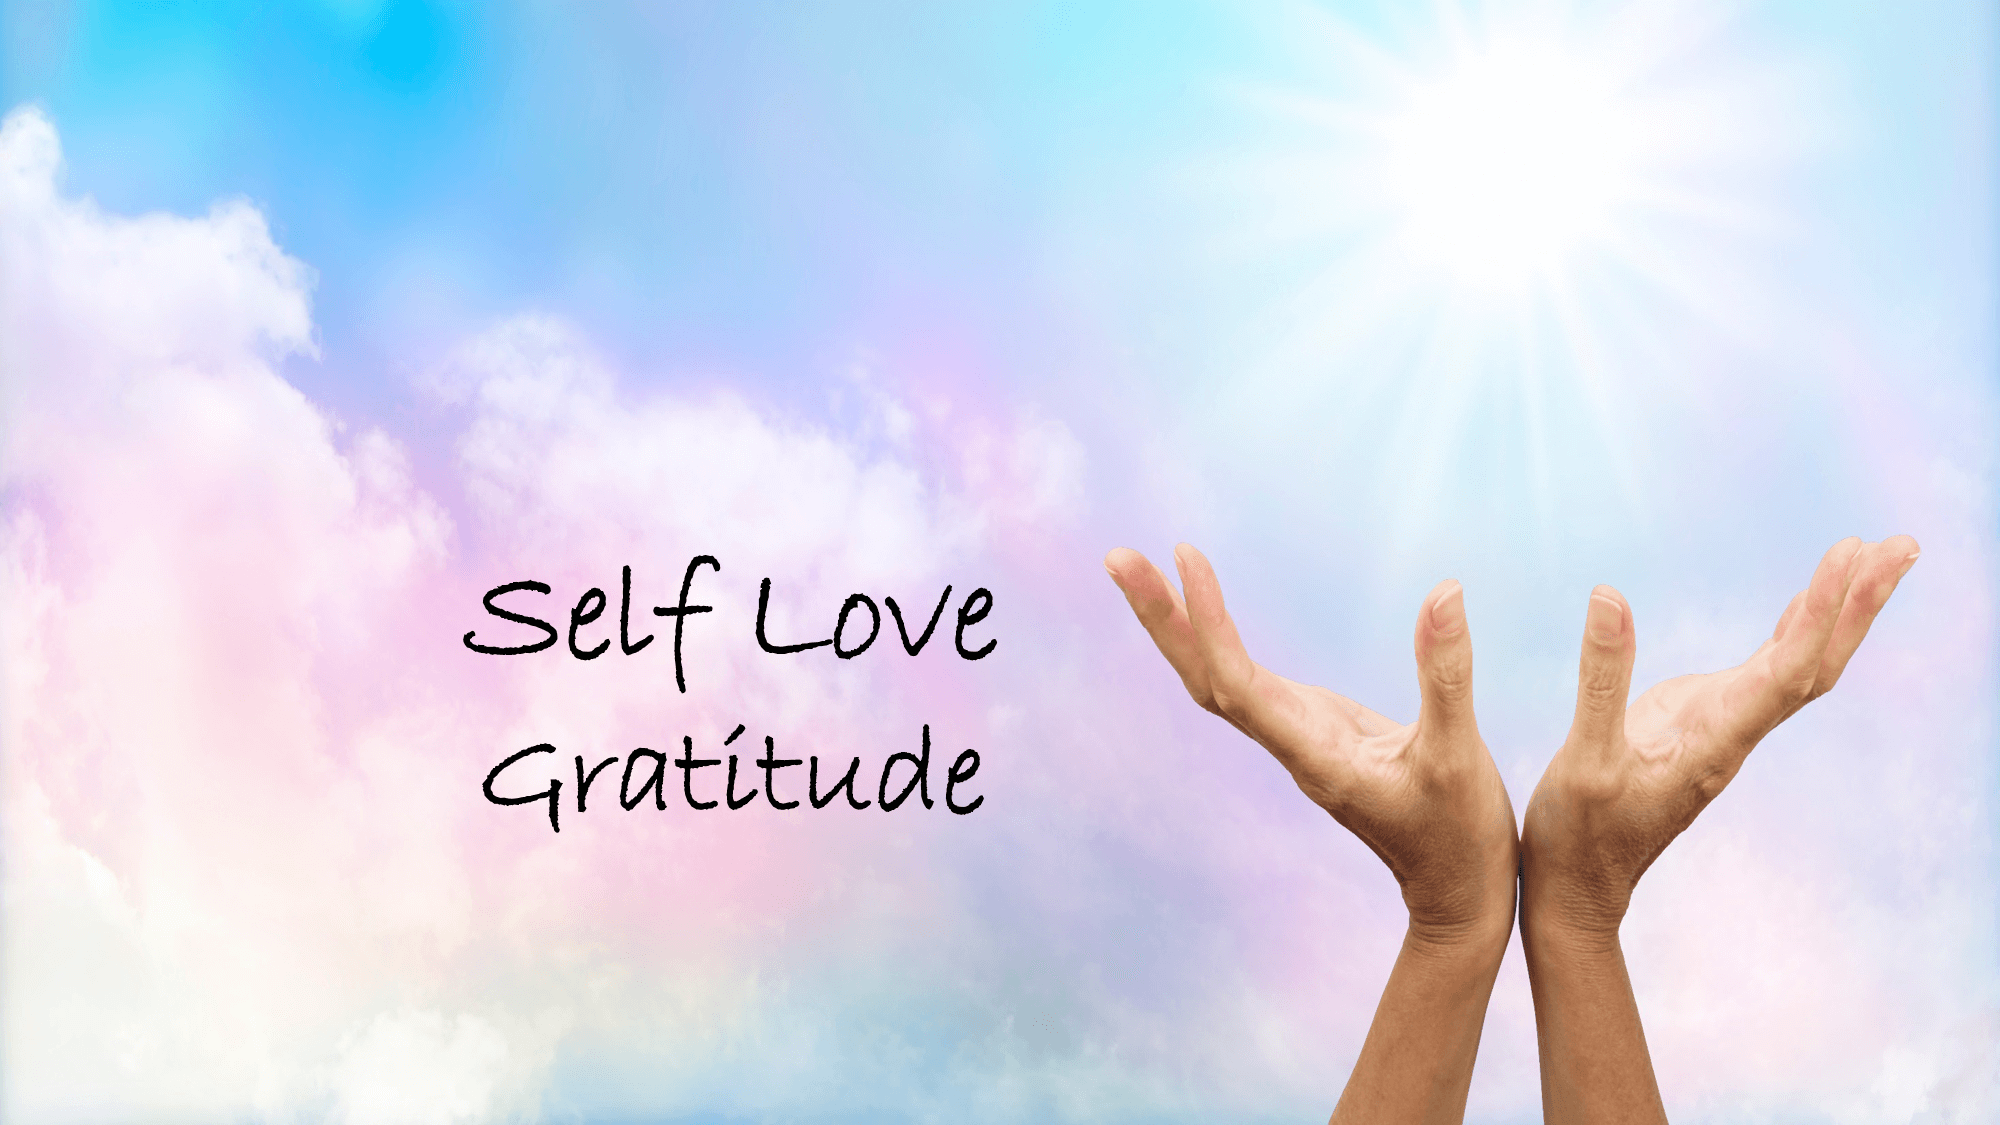 Gratitude - Feeling stuck or negative?Journey to a wonderful place in your imagination where you review the many aspects in your life for which you are truly grateful.